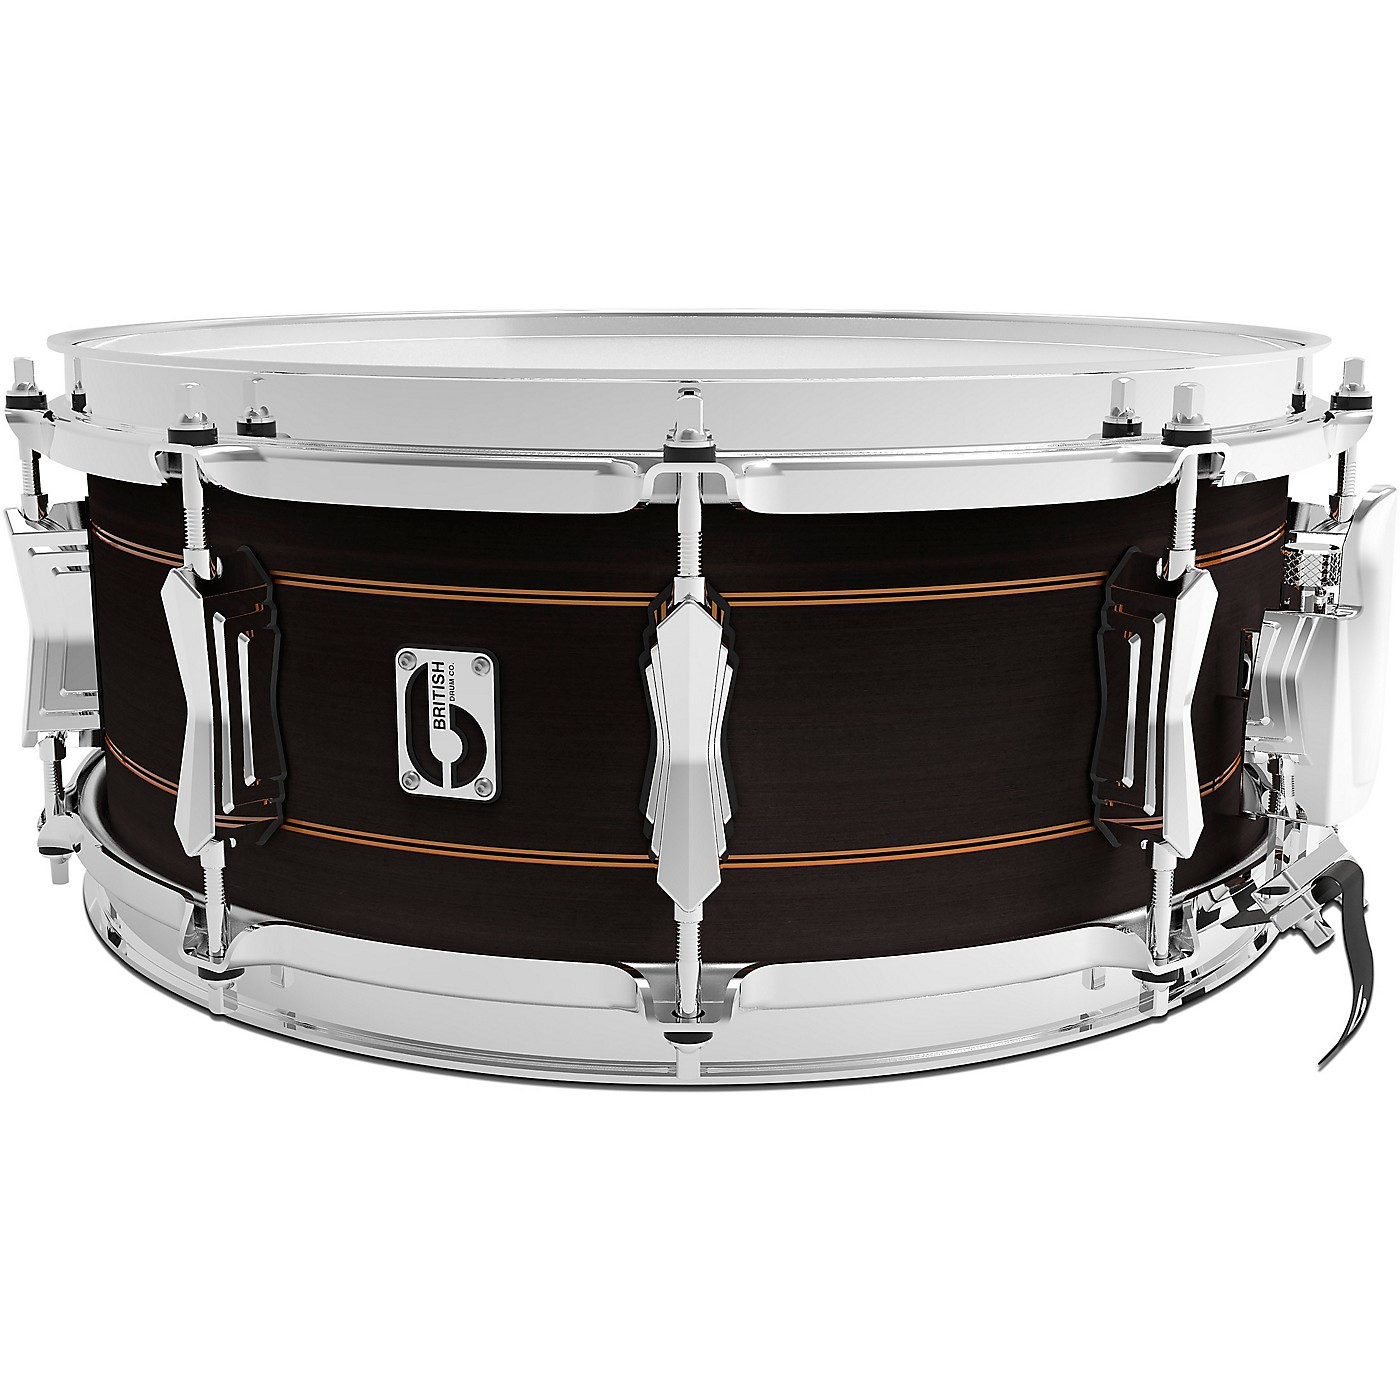 British Drum Co. Merlin Snare Drum thumbnail